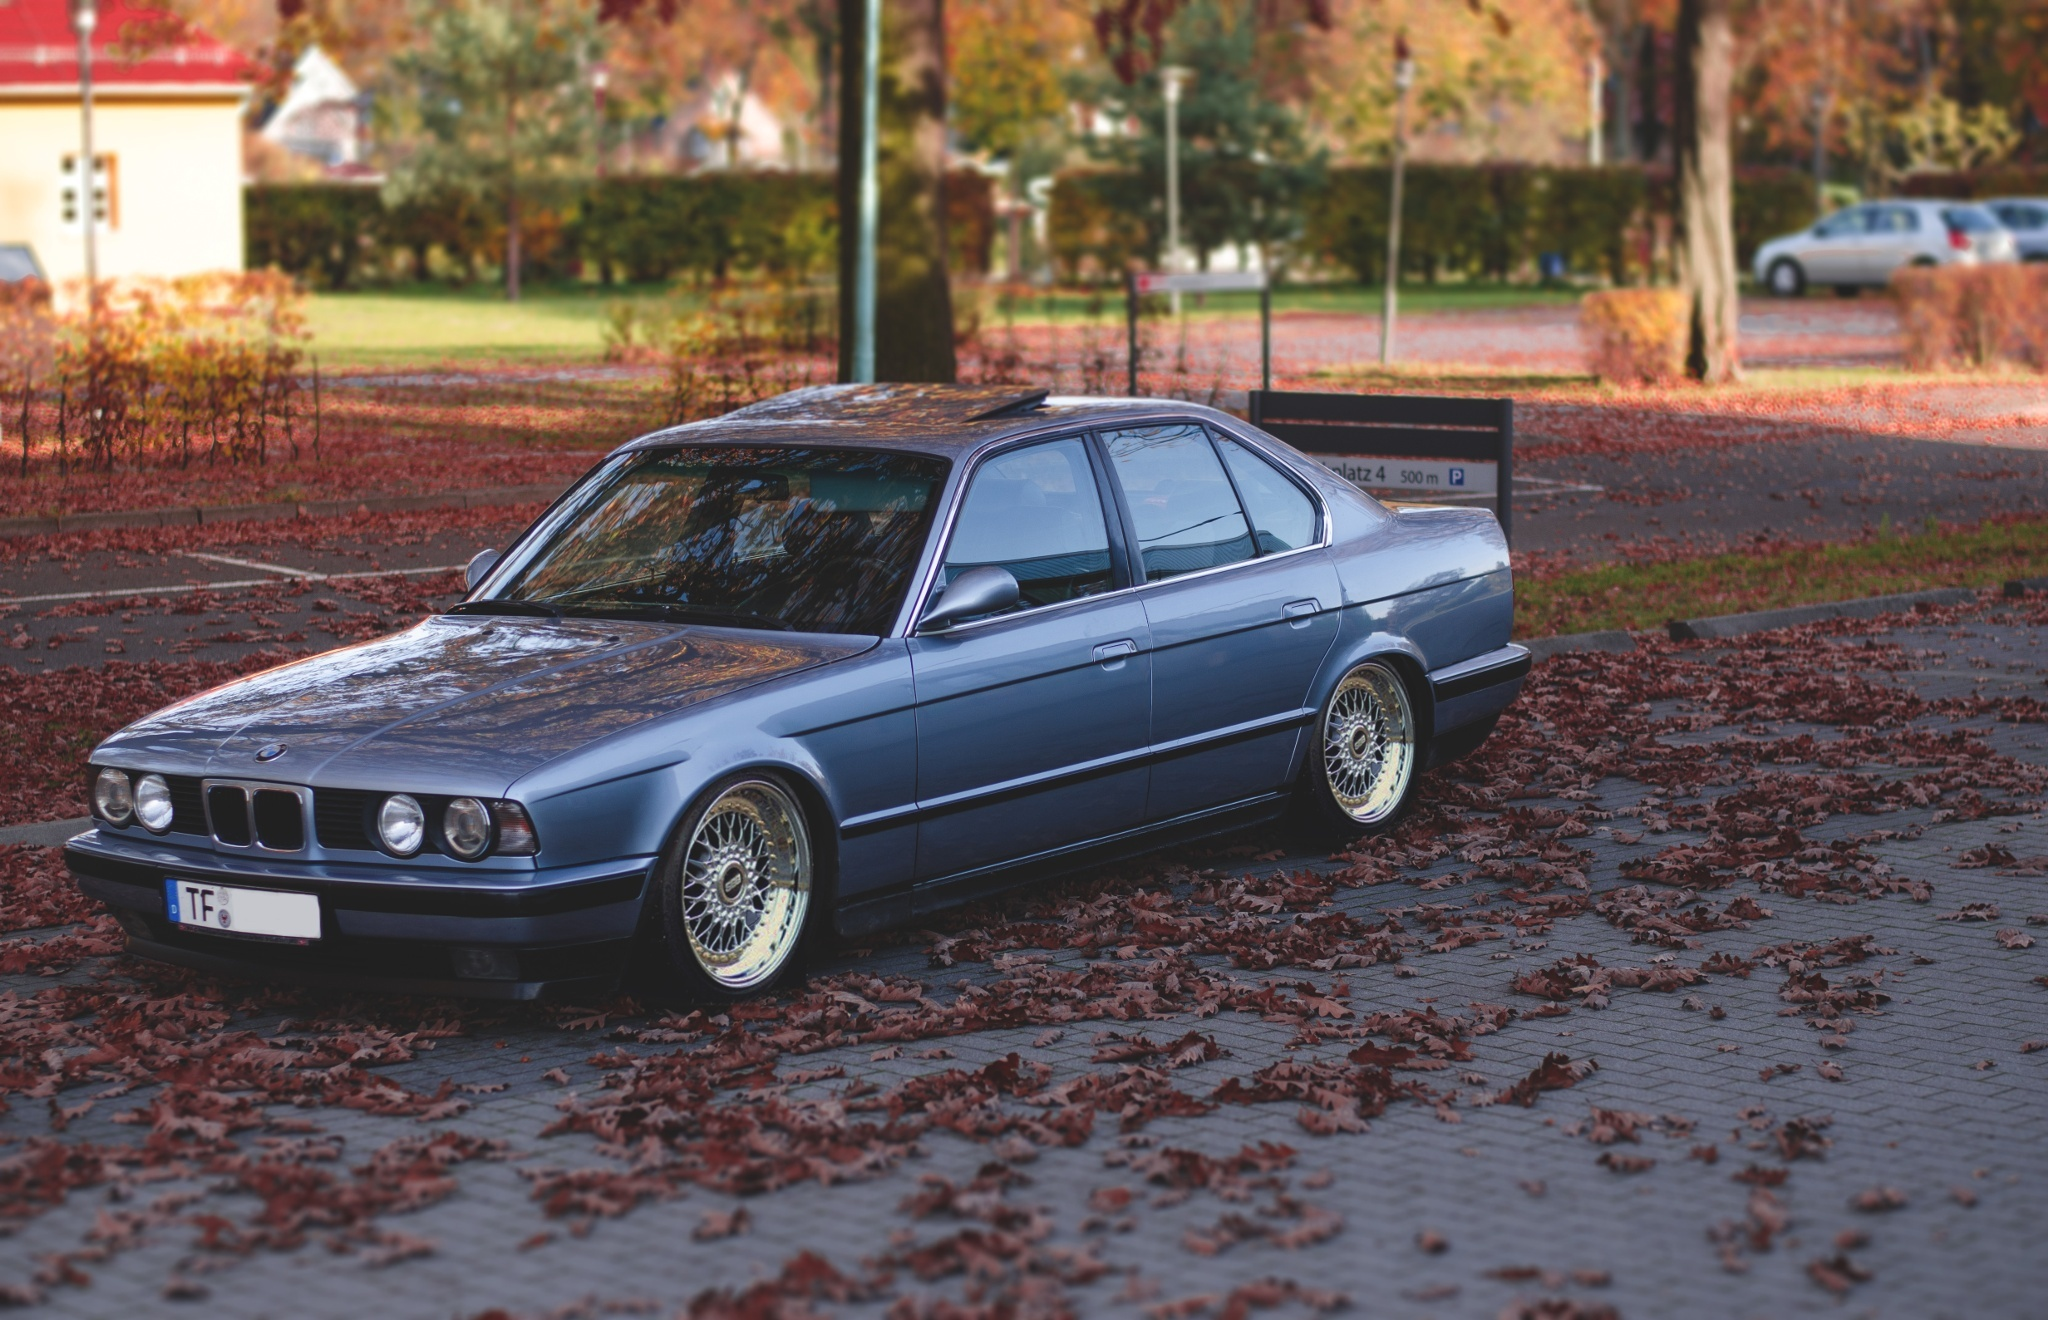 bmw e34 wallpapers images photos pictures backgrounds. Black Bedroom Furniture Sets. Home Design Ideas